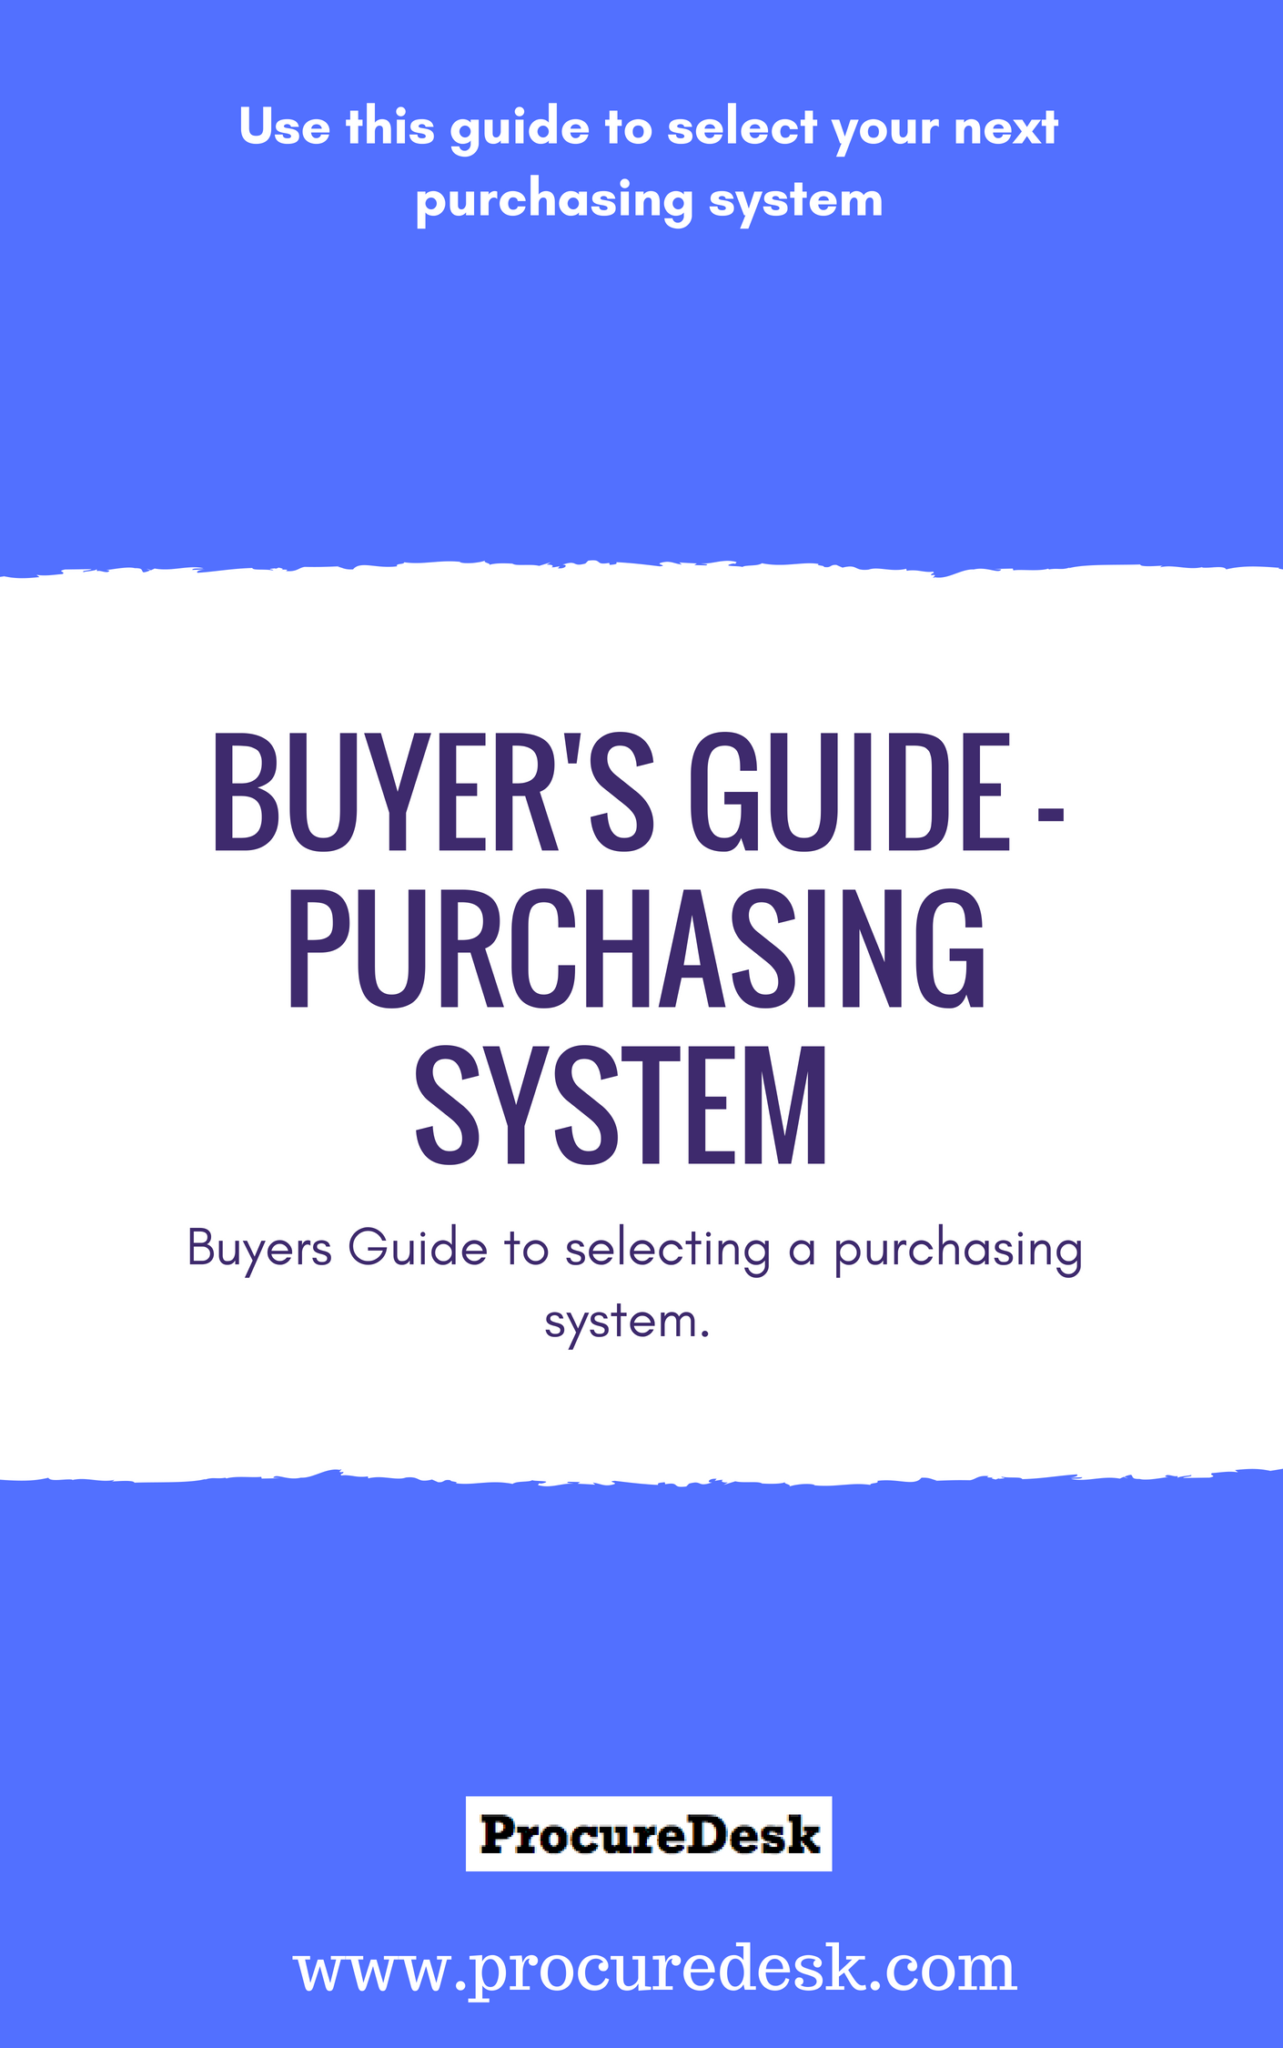 Buyers Guide for selecting a purchasing system